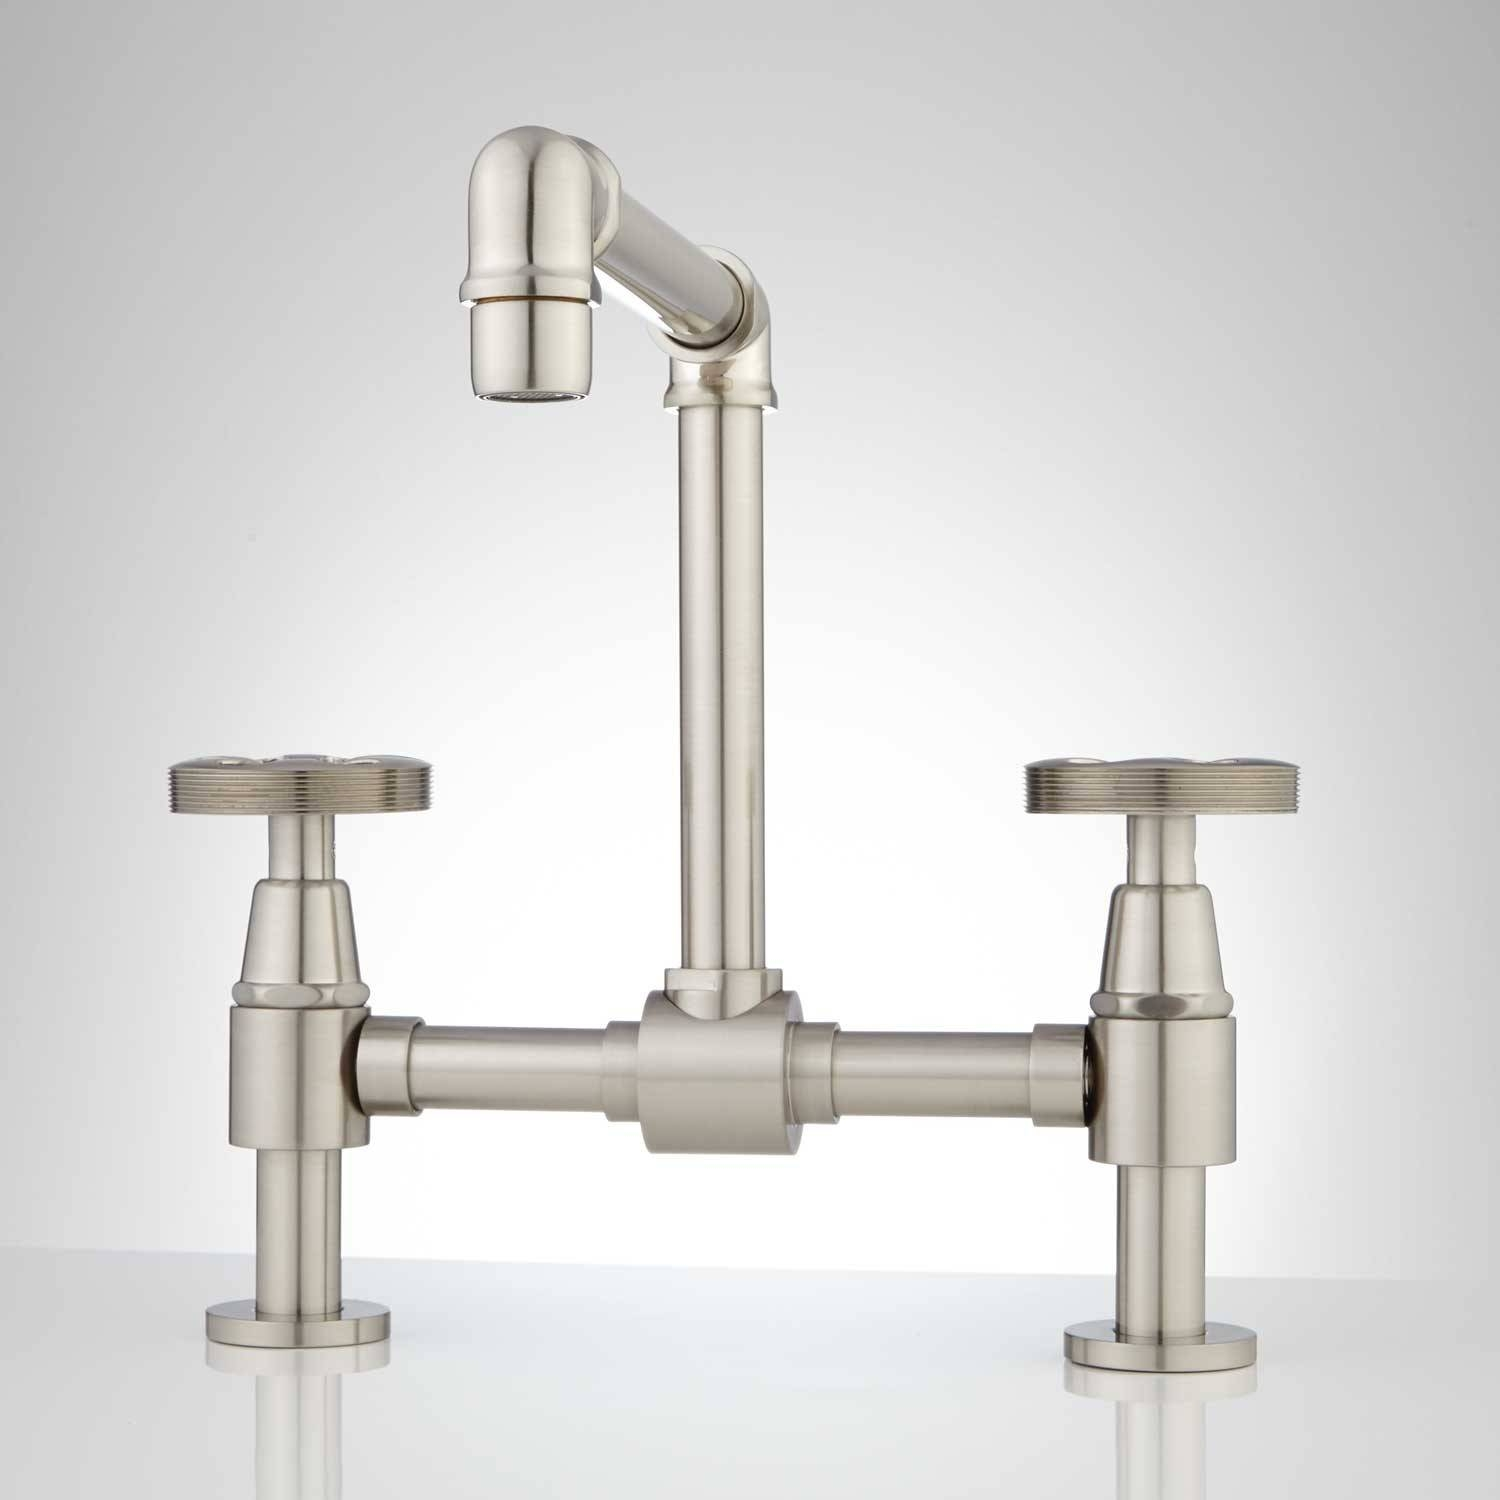 Ideas, kitchen sinks sink faucets trends also top rated images faucet regarding proportions 1500 x 1500  .